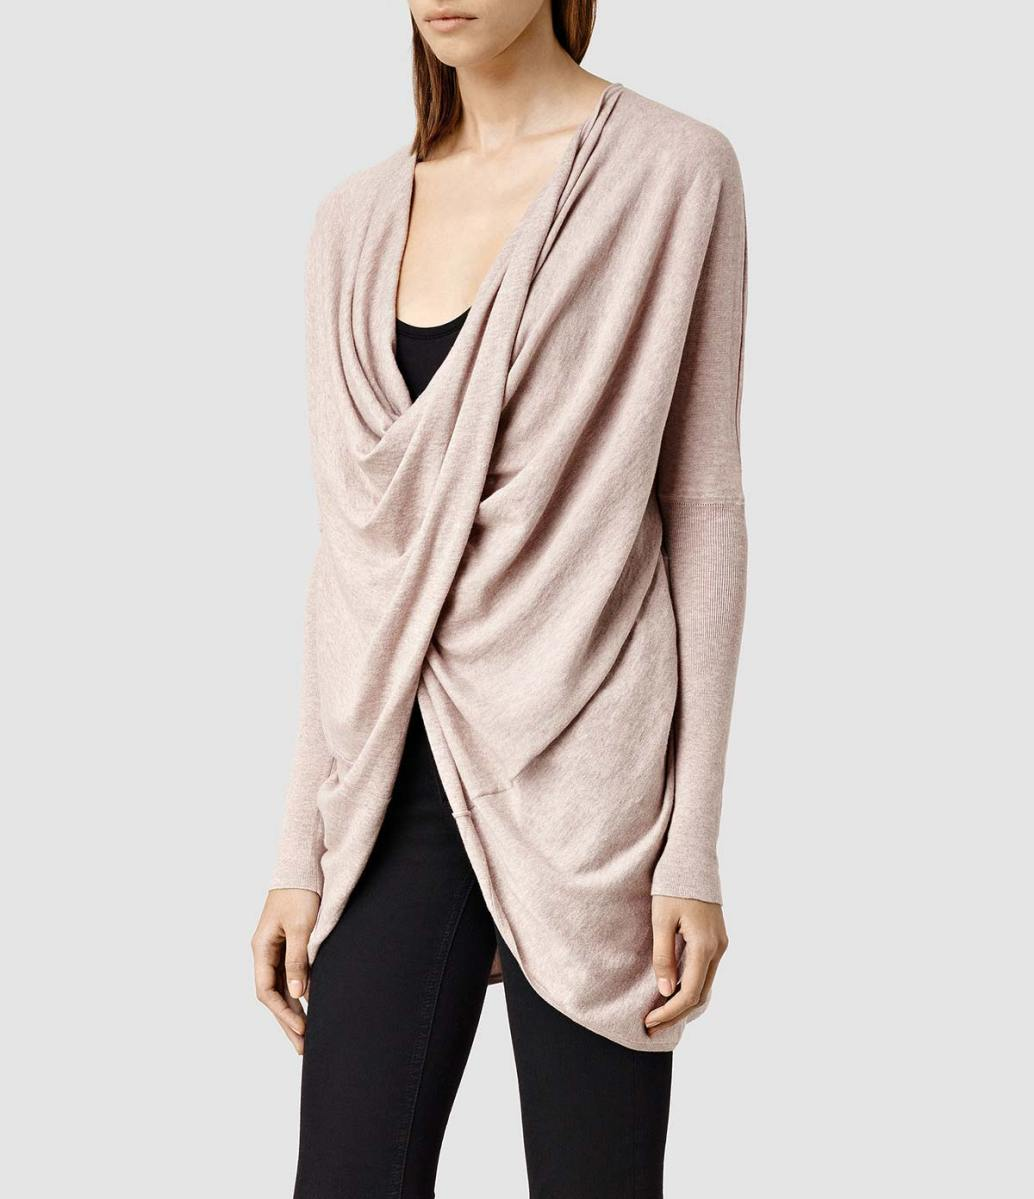 Crushing on this color - Pink blush clothes for Fall